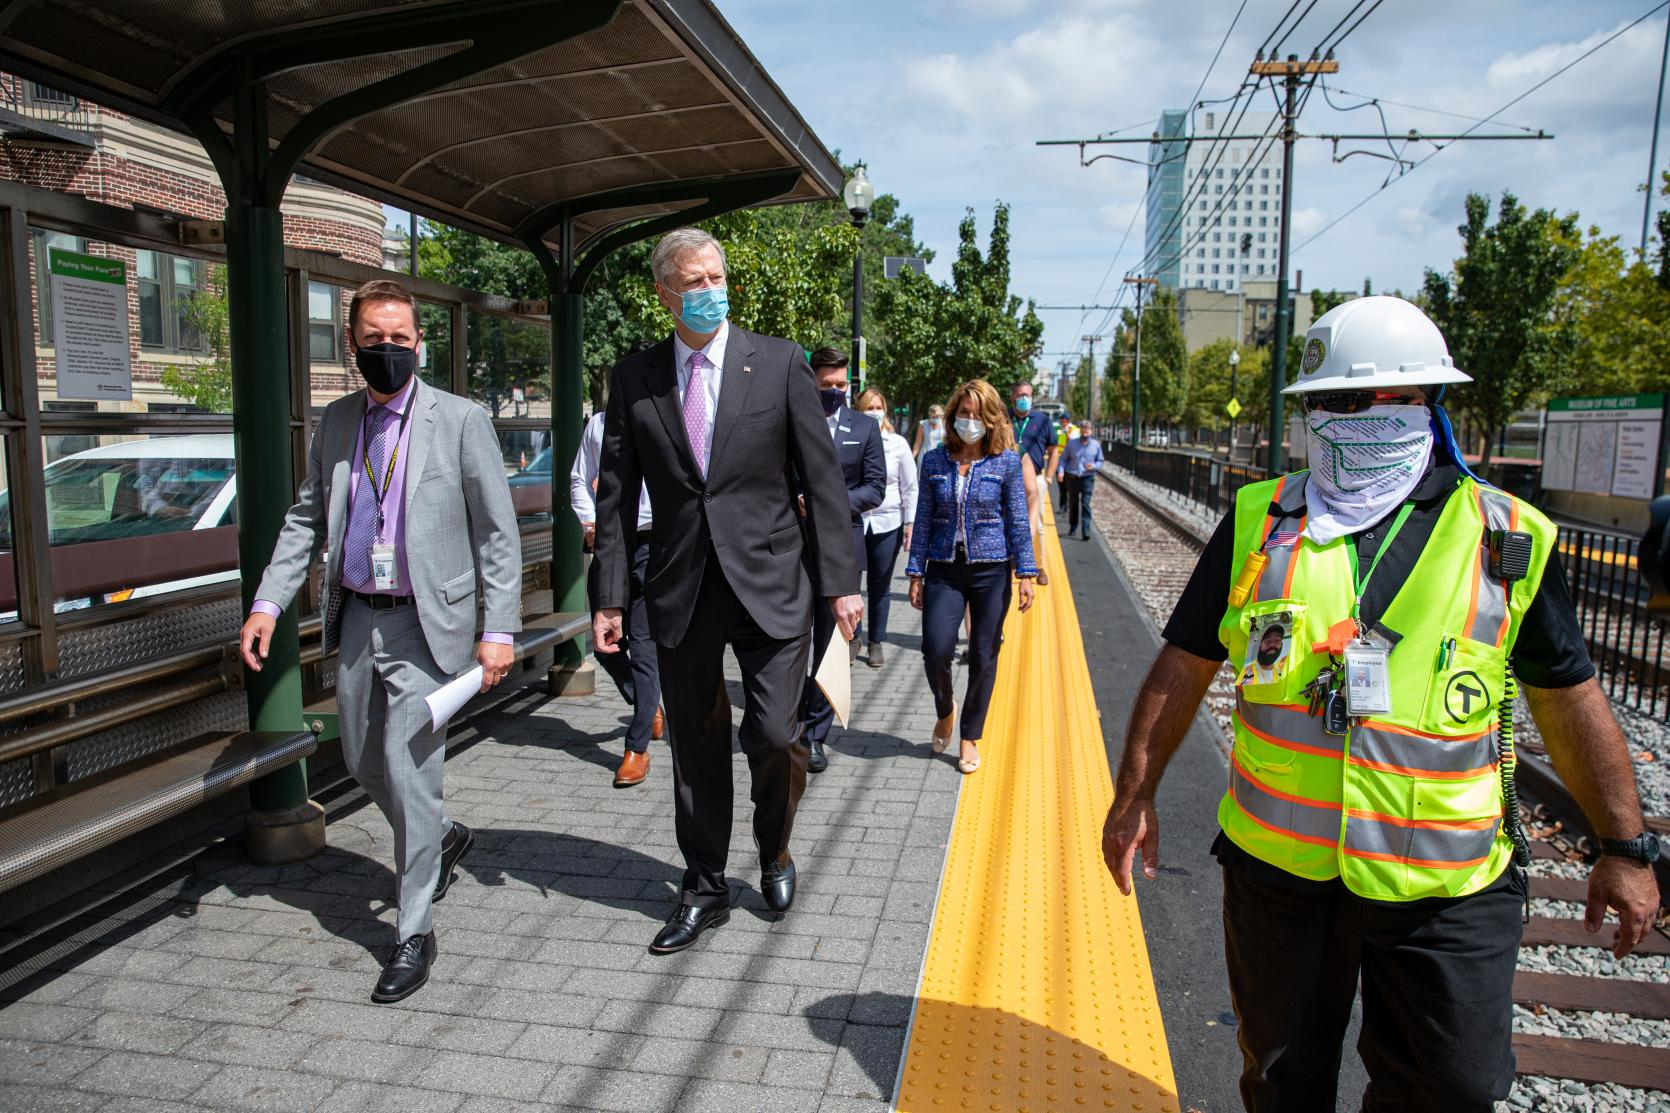 Building a Better T: Baker-Polito Administration, Transportation Officials Celebrate Successful Completion of Accelerated Green Line C and E Branch Work